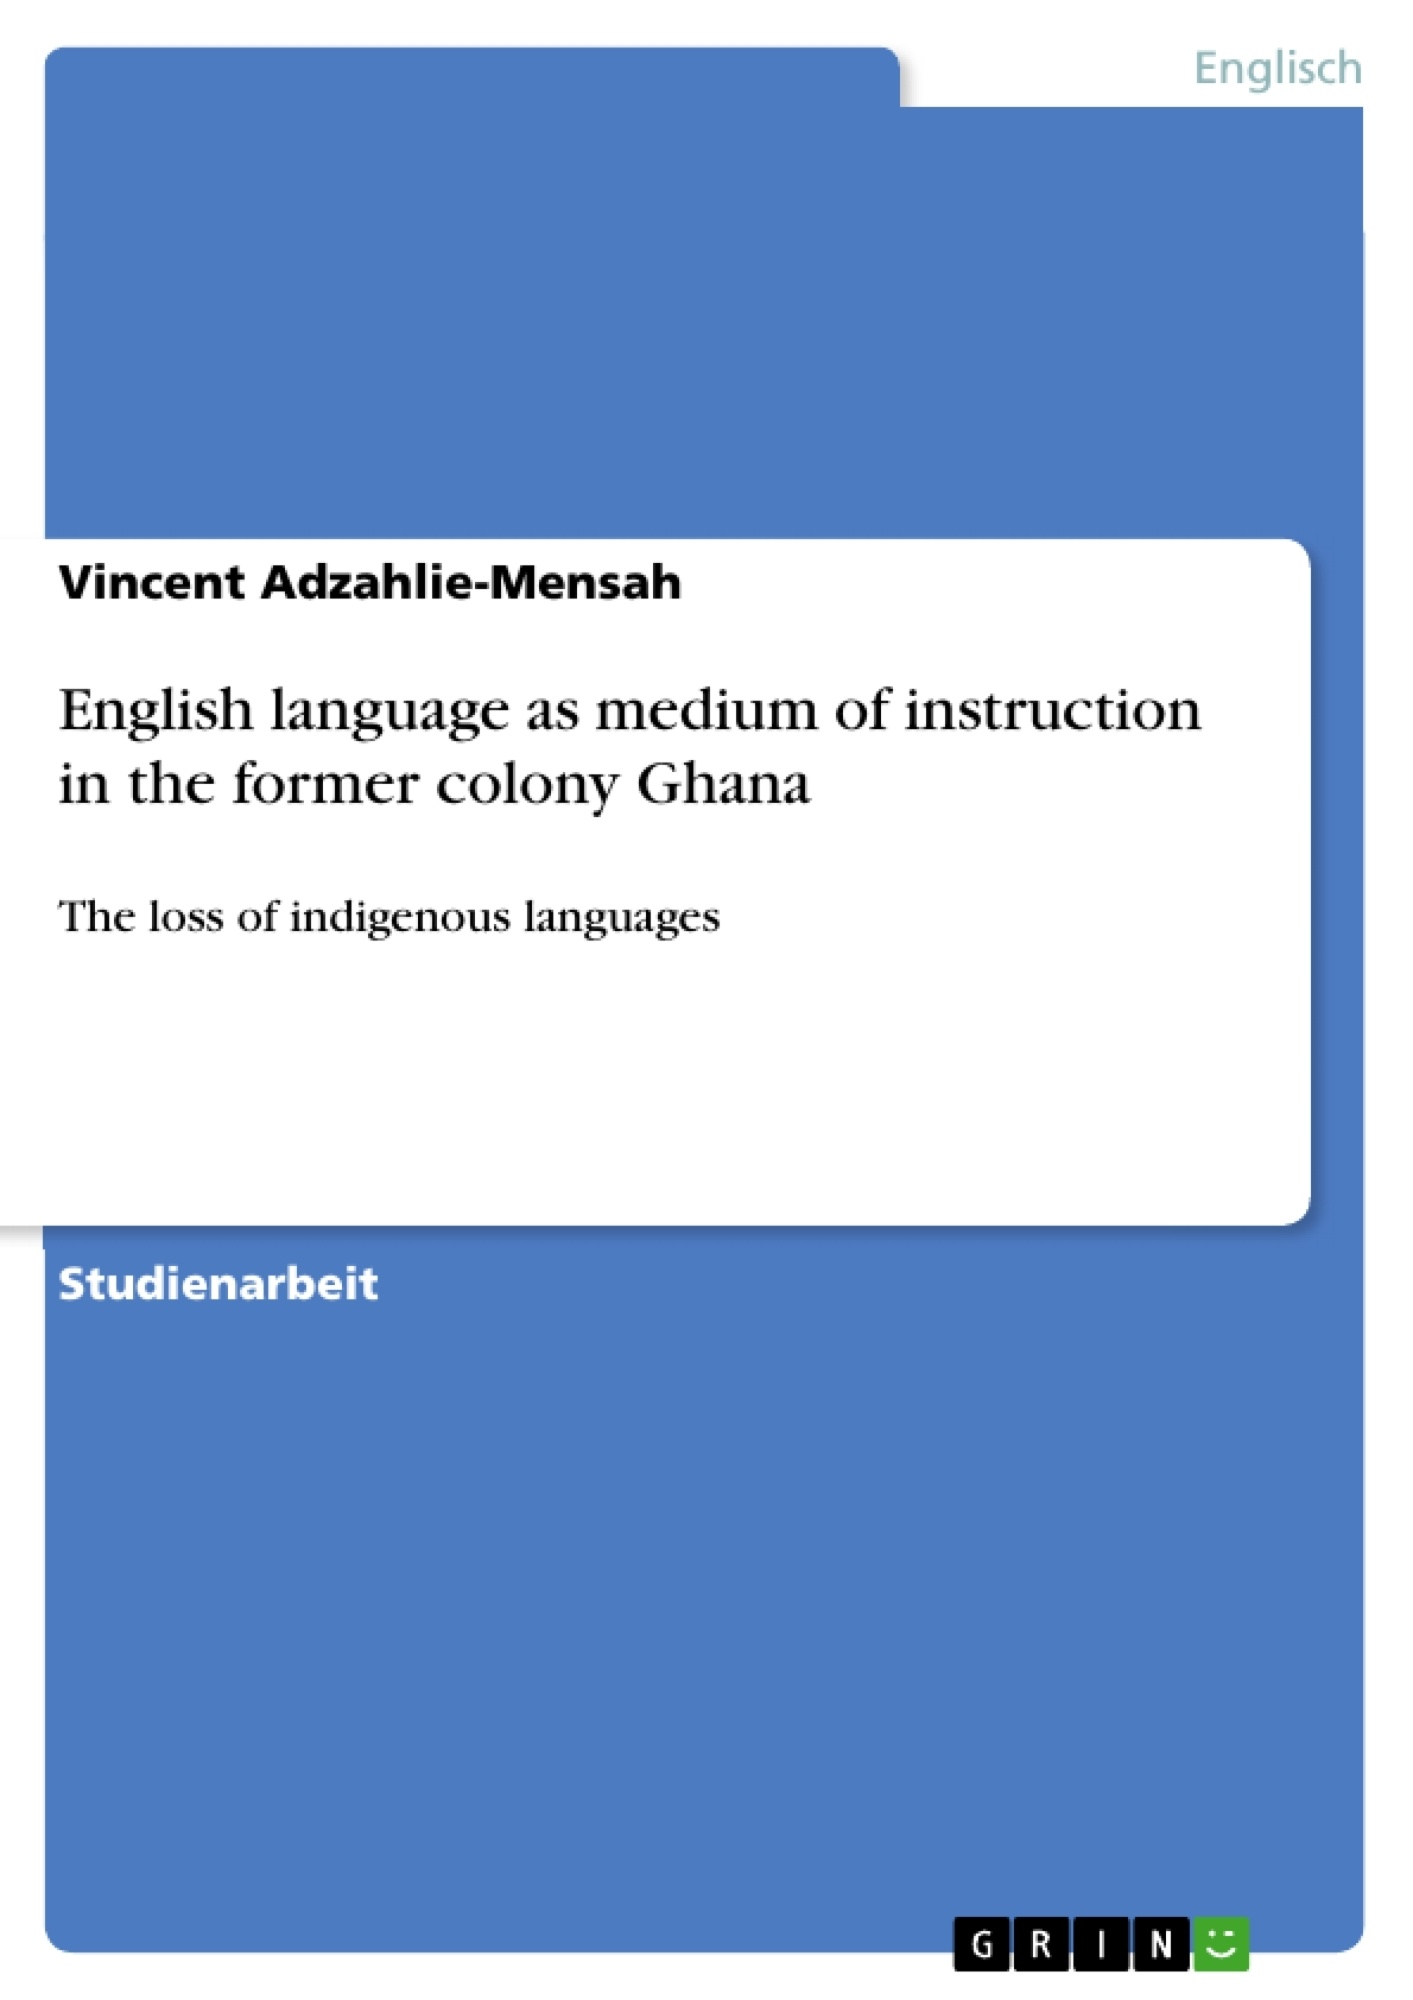 Titel: English language as medium of instruction in the former colony Ghana